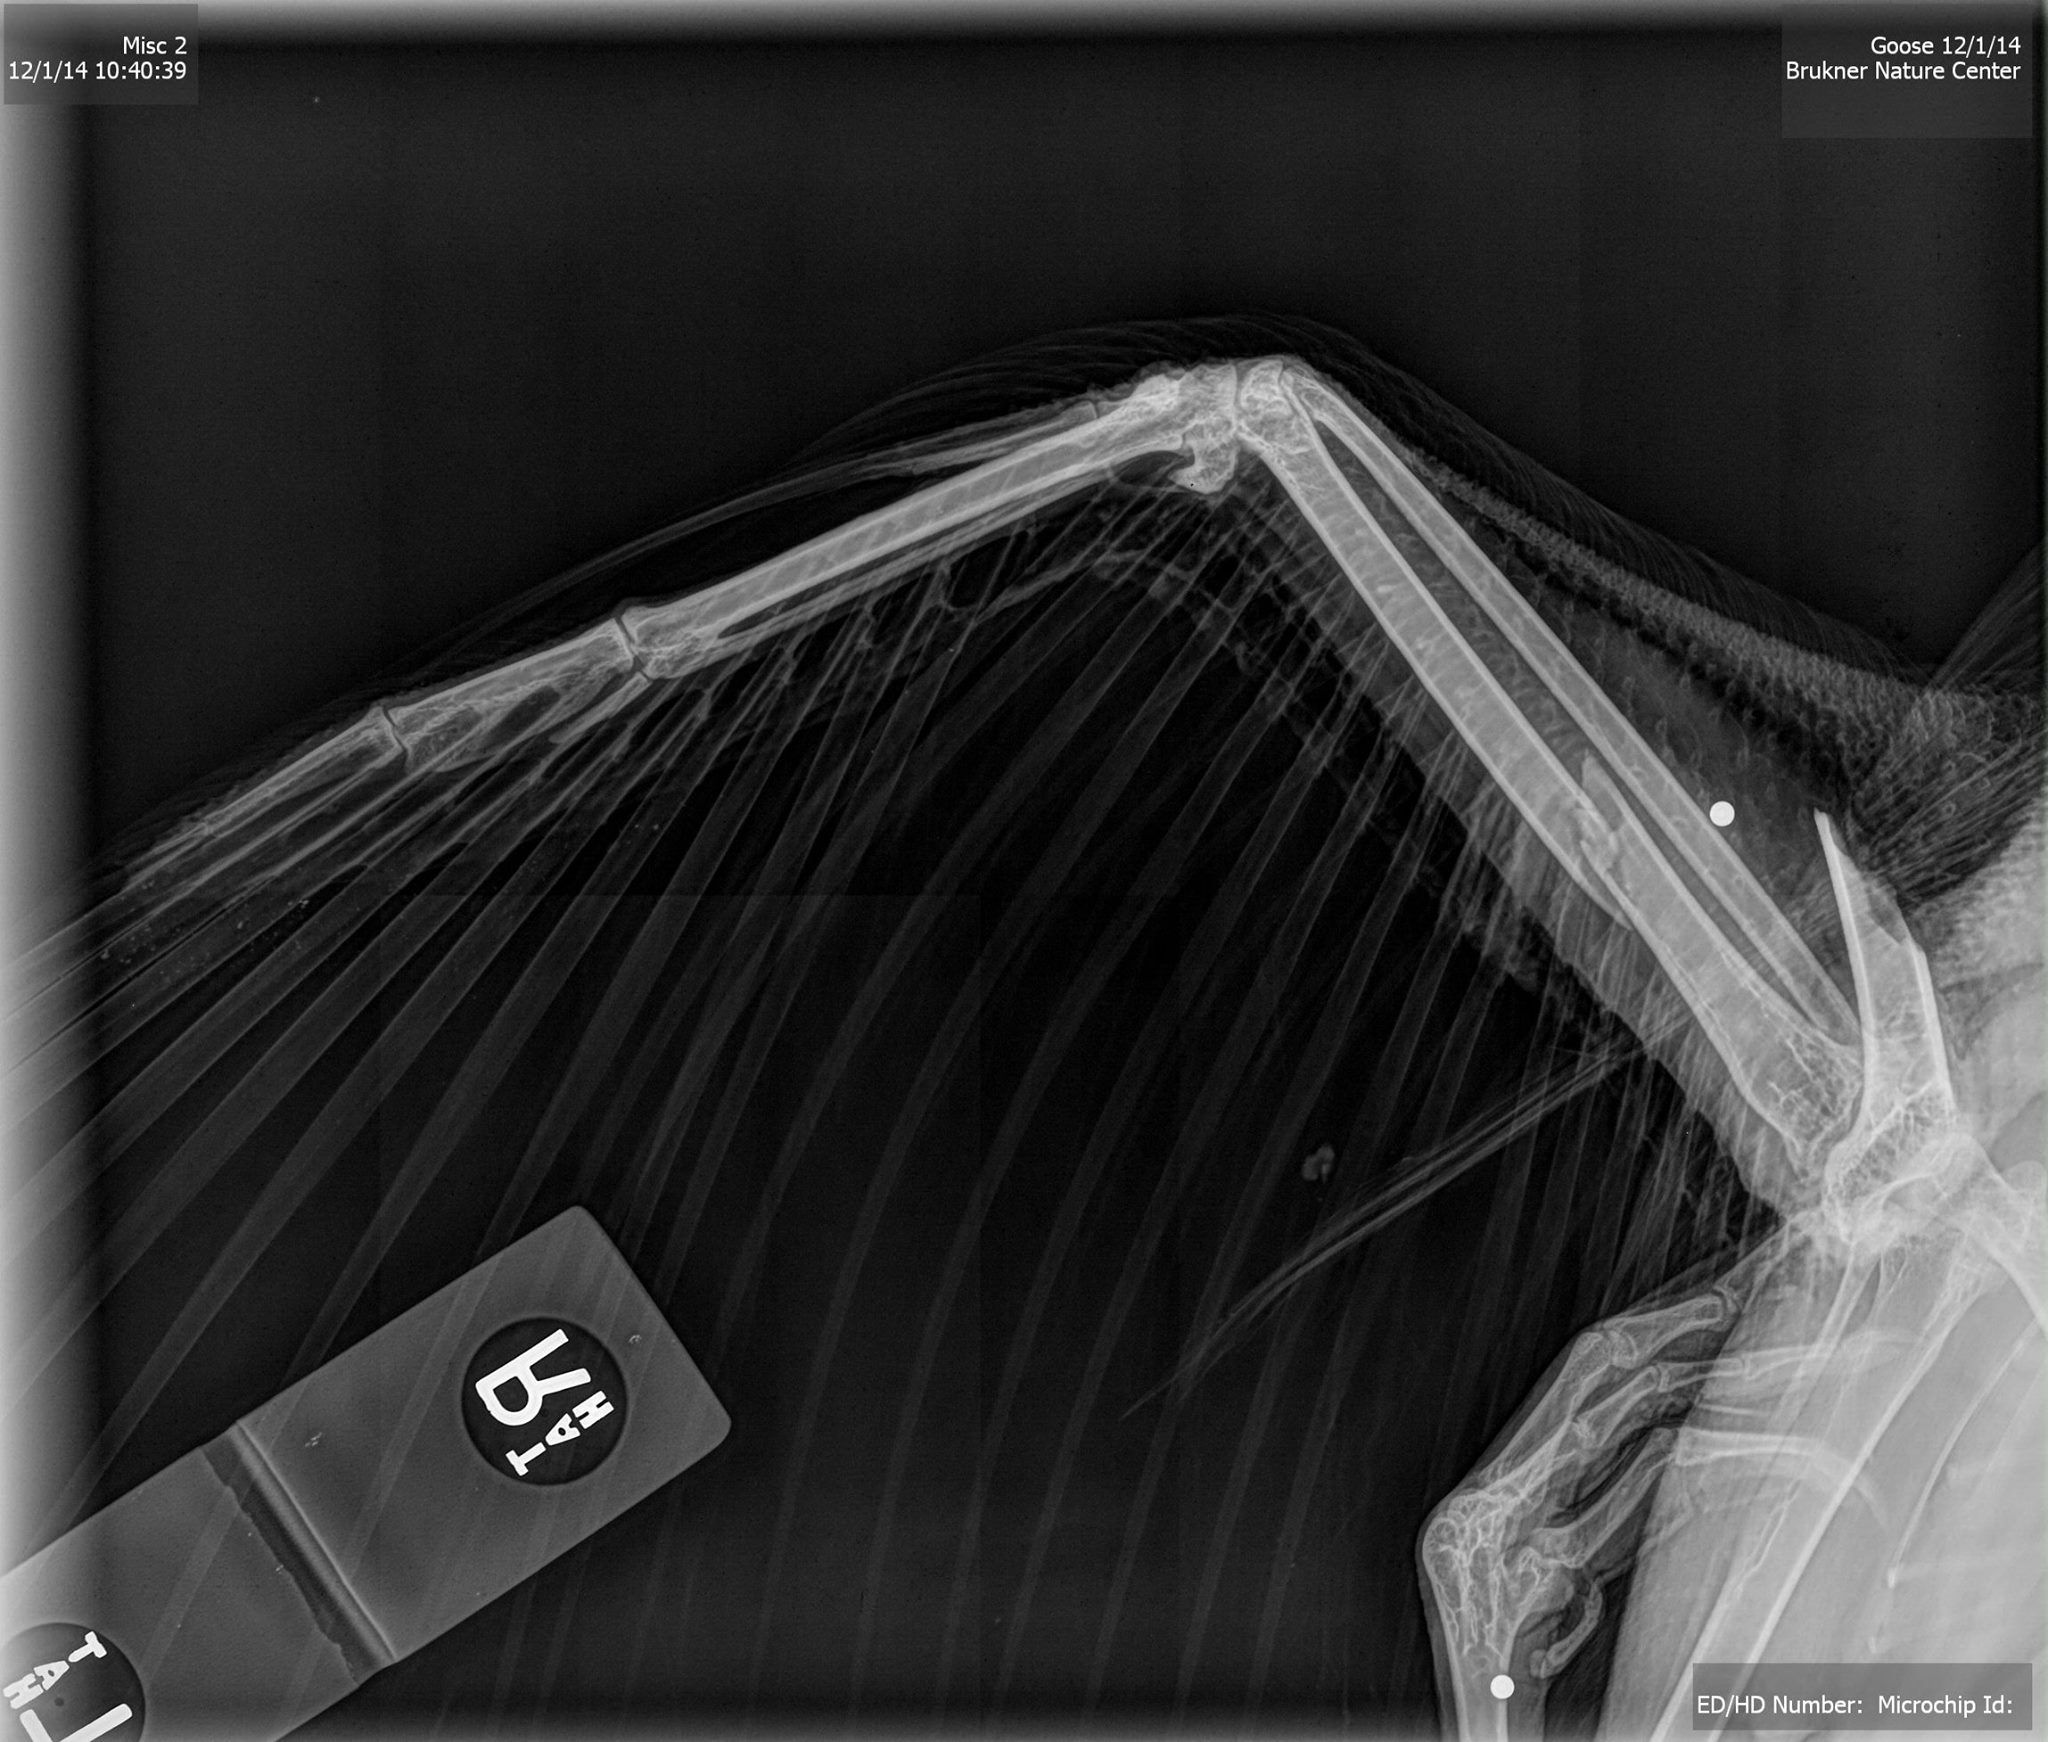 Hopefully your Monday is going better than this Canada Goose's that Brukner Nature Center brought him in last week, and on radiograph it was found that he had been shot and had a broken wing. Dr. Morrow pinned his fracture and he is now back at Brukner. We are hopeful that the wing will heal well enough to allow him to fly again.